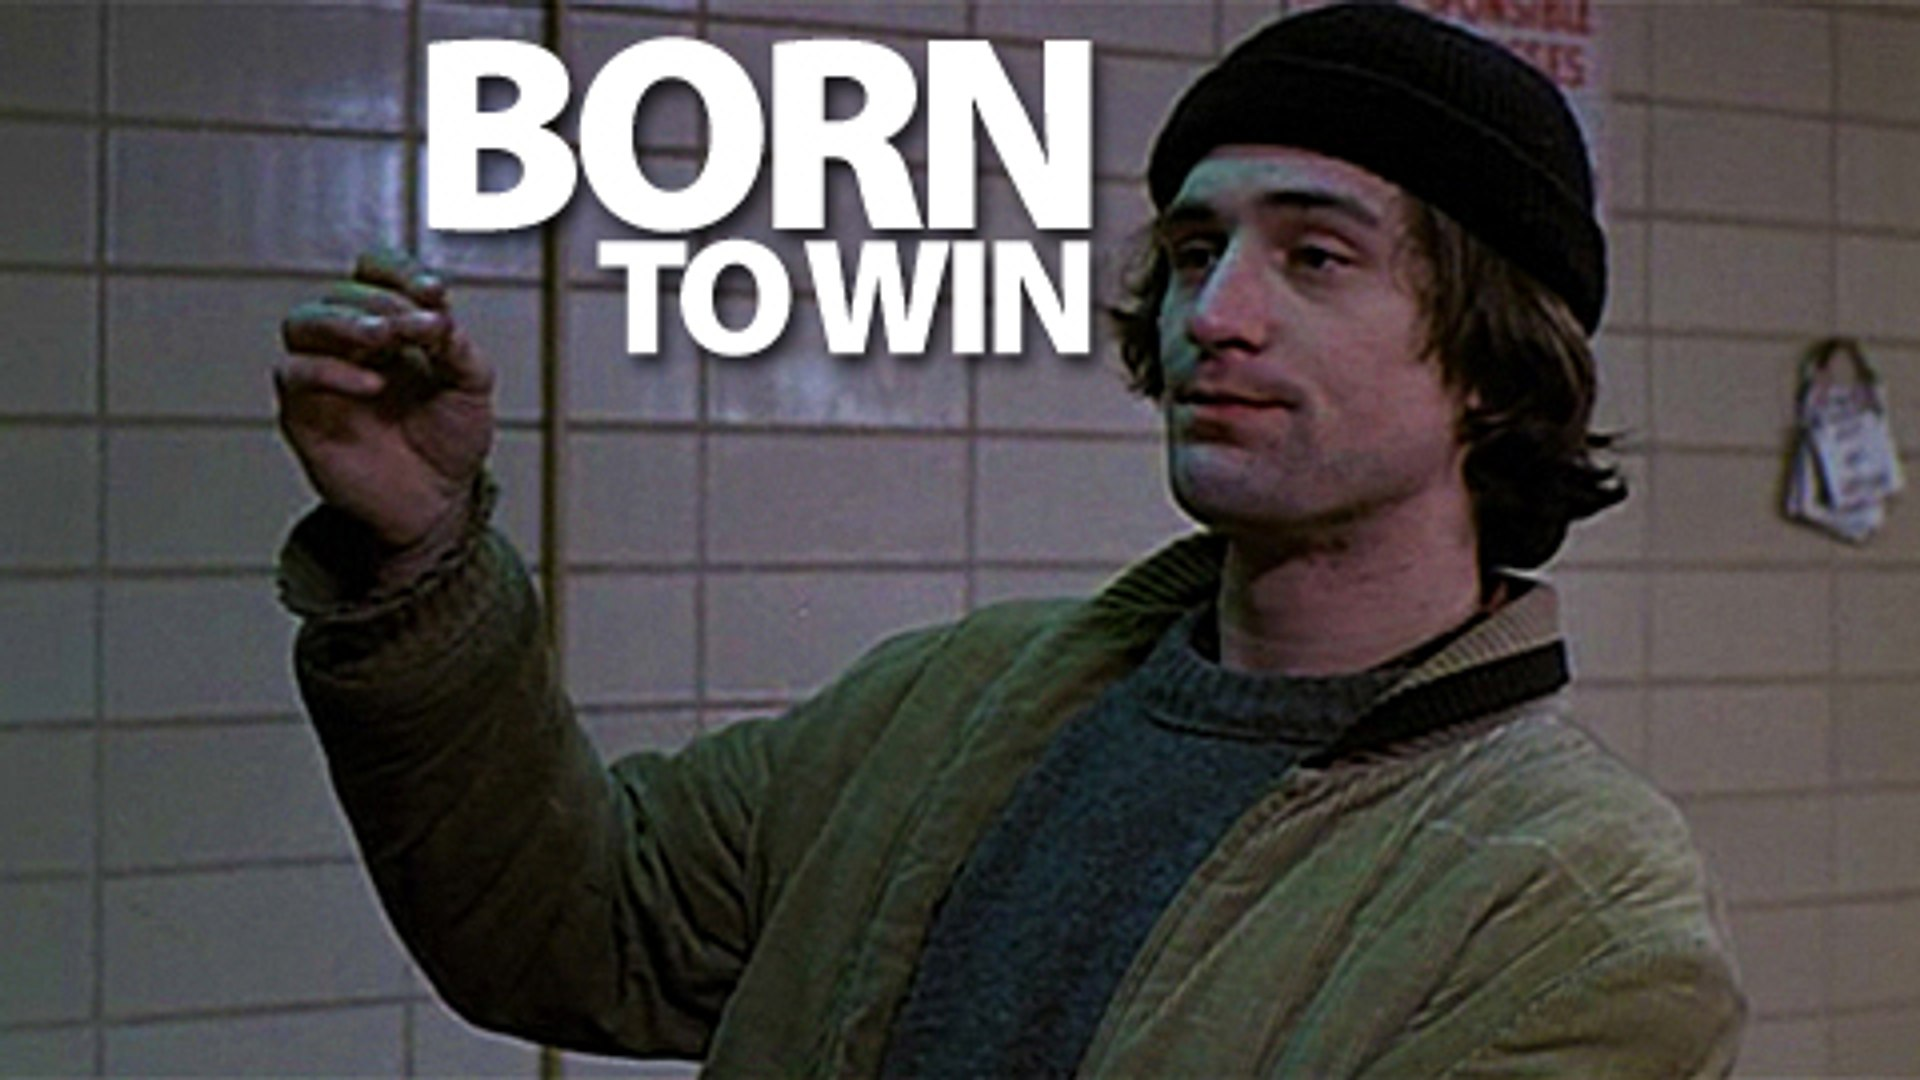 Born To Win (1971) - Robert De Niro, George Segal, and Karen Black - Feature (Comedy, Crime, Drama)